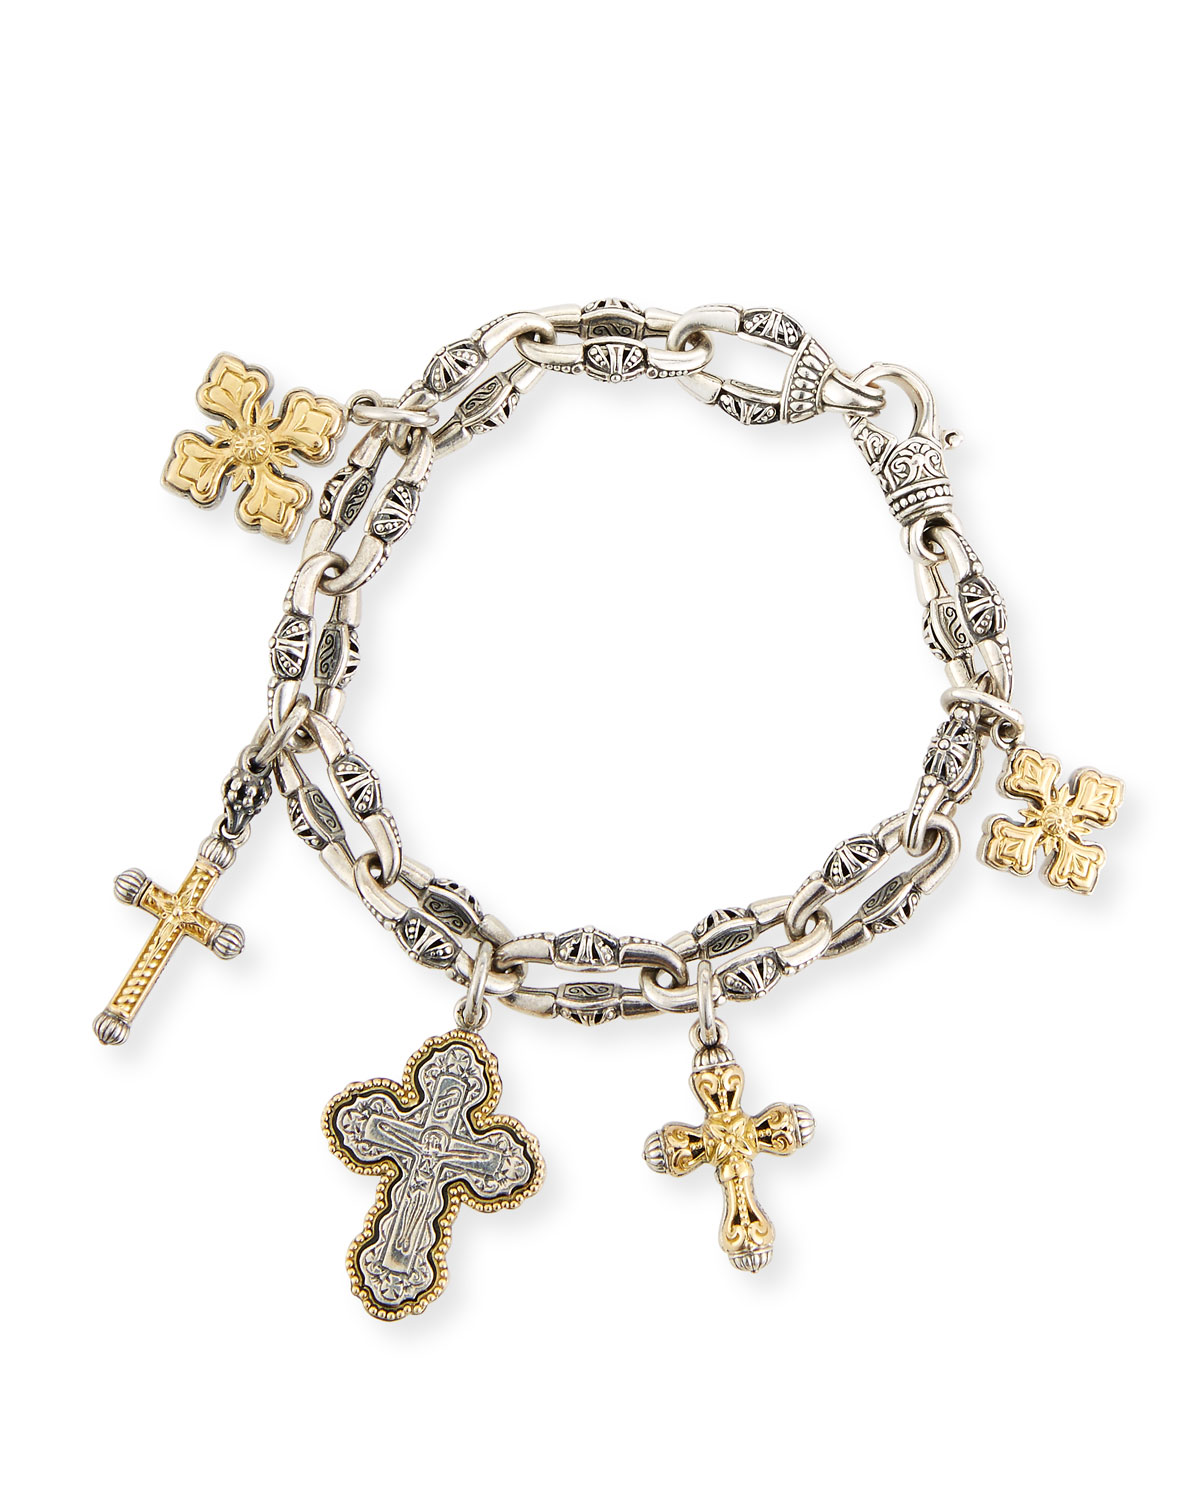 Cross Charm Bracelet: Konstantino Sterling Silver & 18K Gold Cross Charm